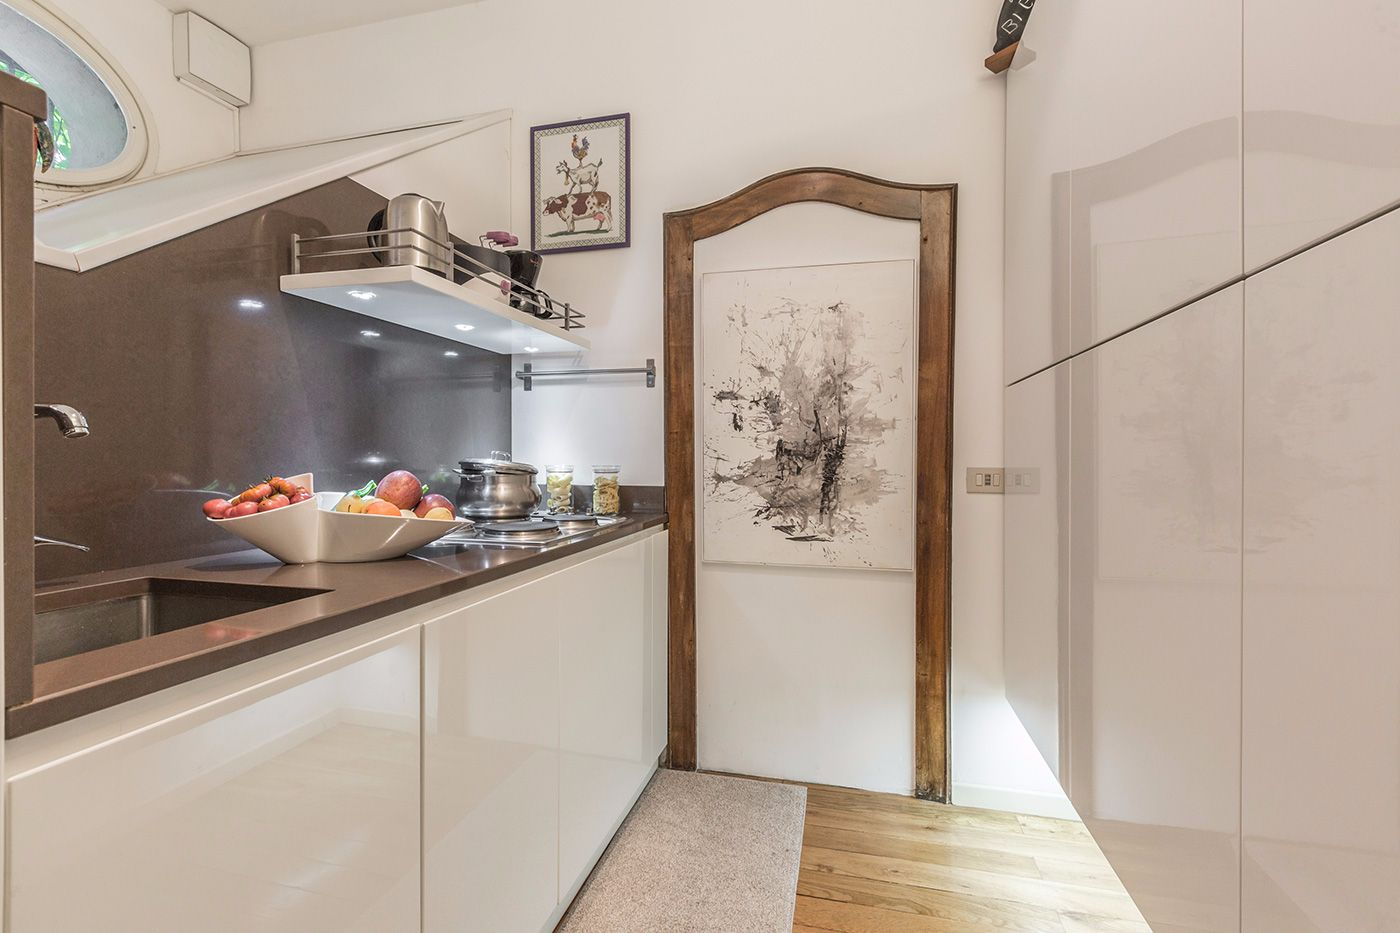 the kitchen has plenty of spacious cupboards on the right and the appliances on the left